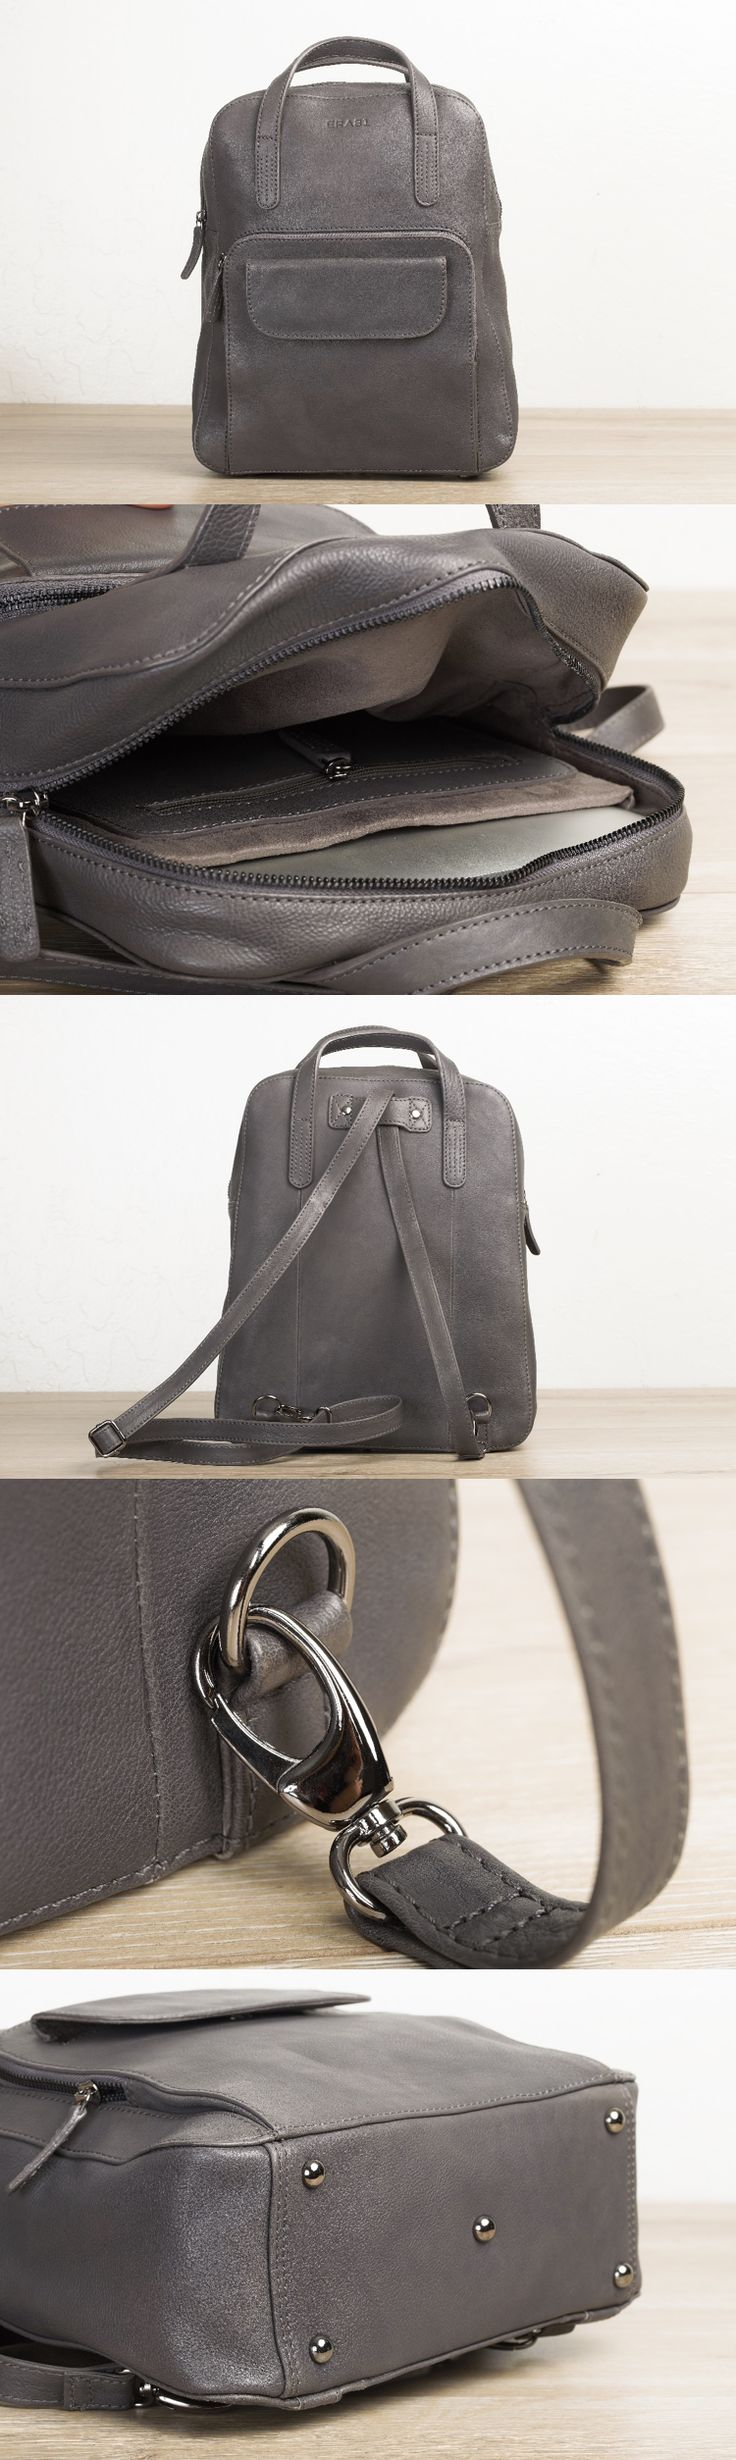 #convertible #leather #laptop #backpack for @women by #TheLeatherExpert